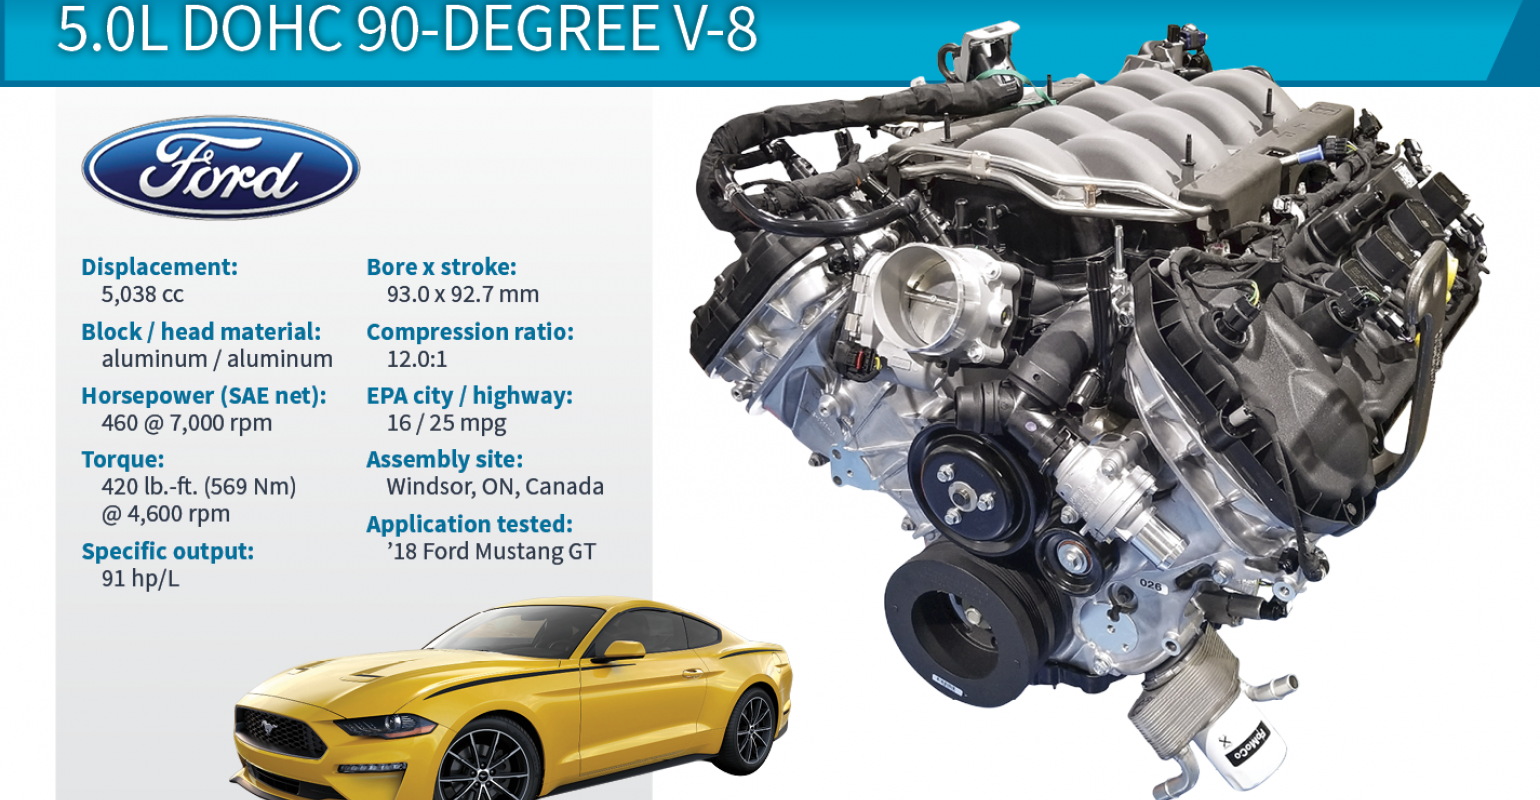 2018 Wards 10 Best Engines Winner | Ford Mustang GT 5 0L